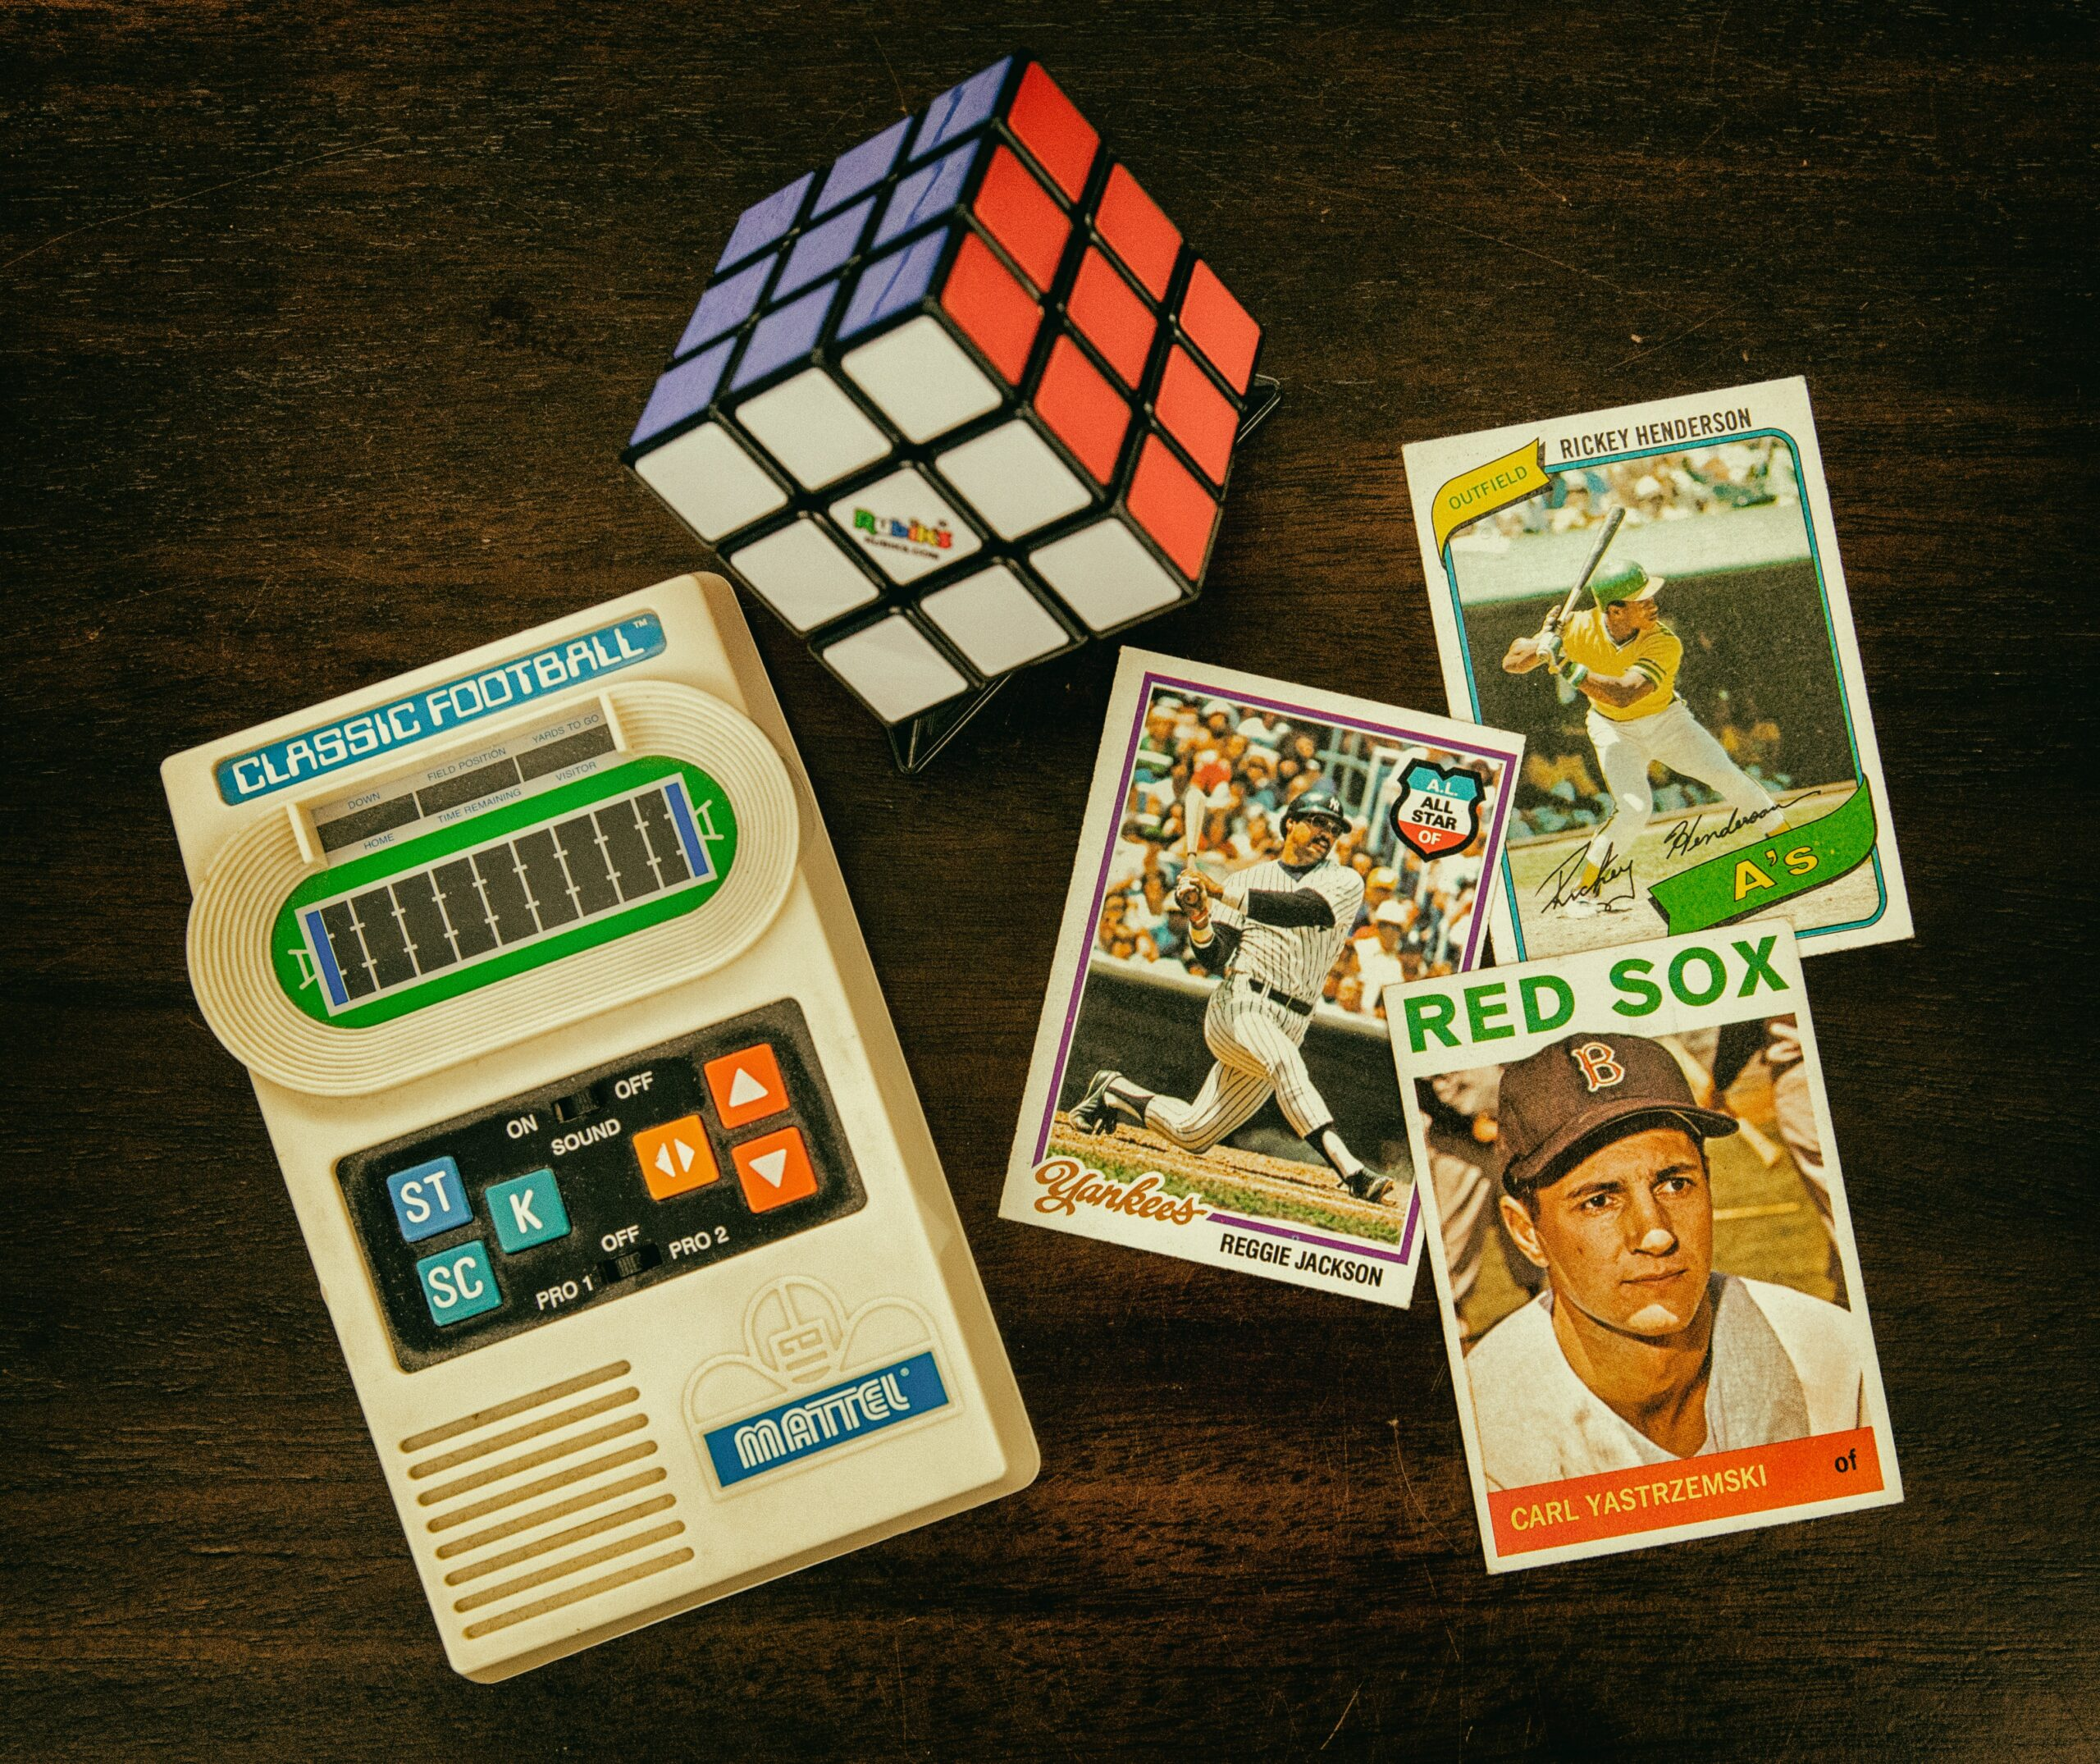 vintage trading cards and hand held game